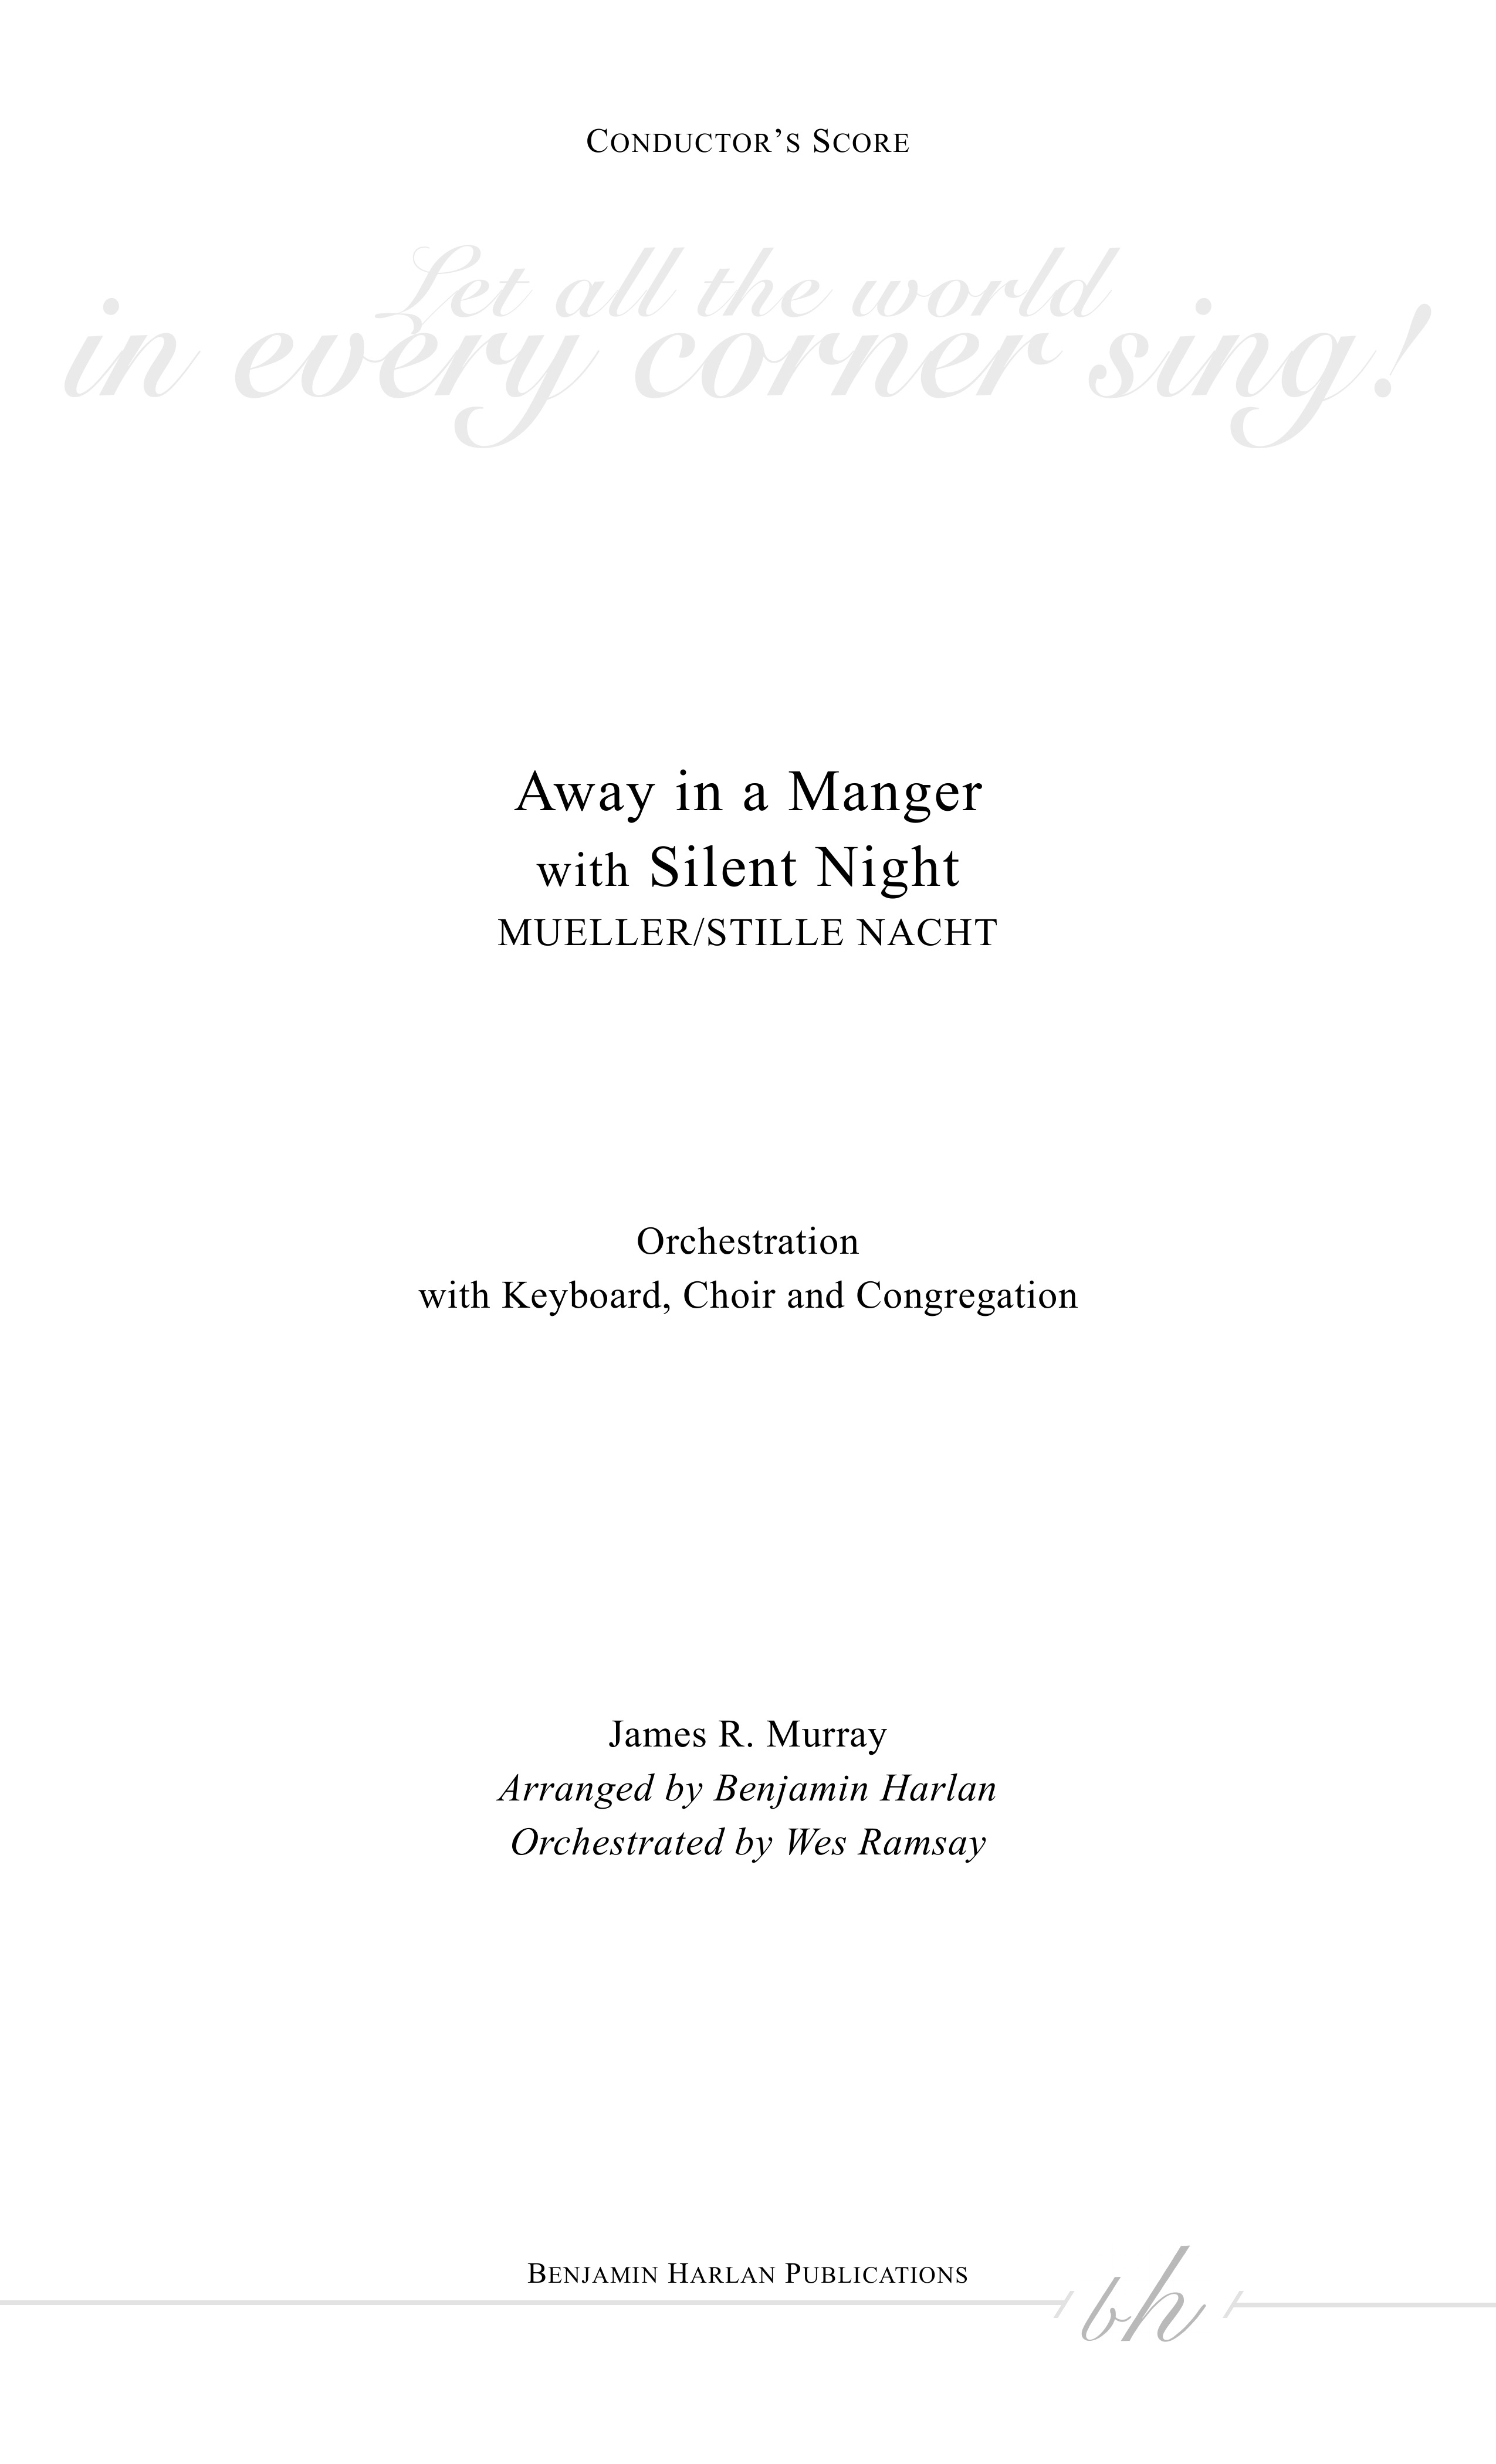 Away in a Manger/Silent Night ORCH